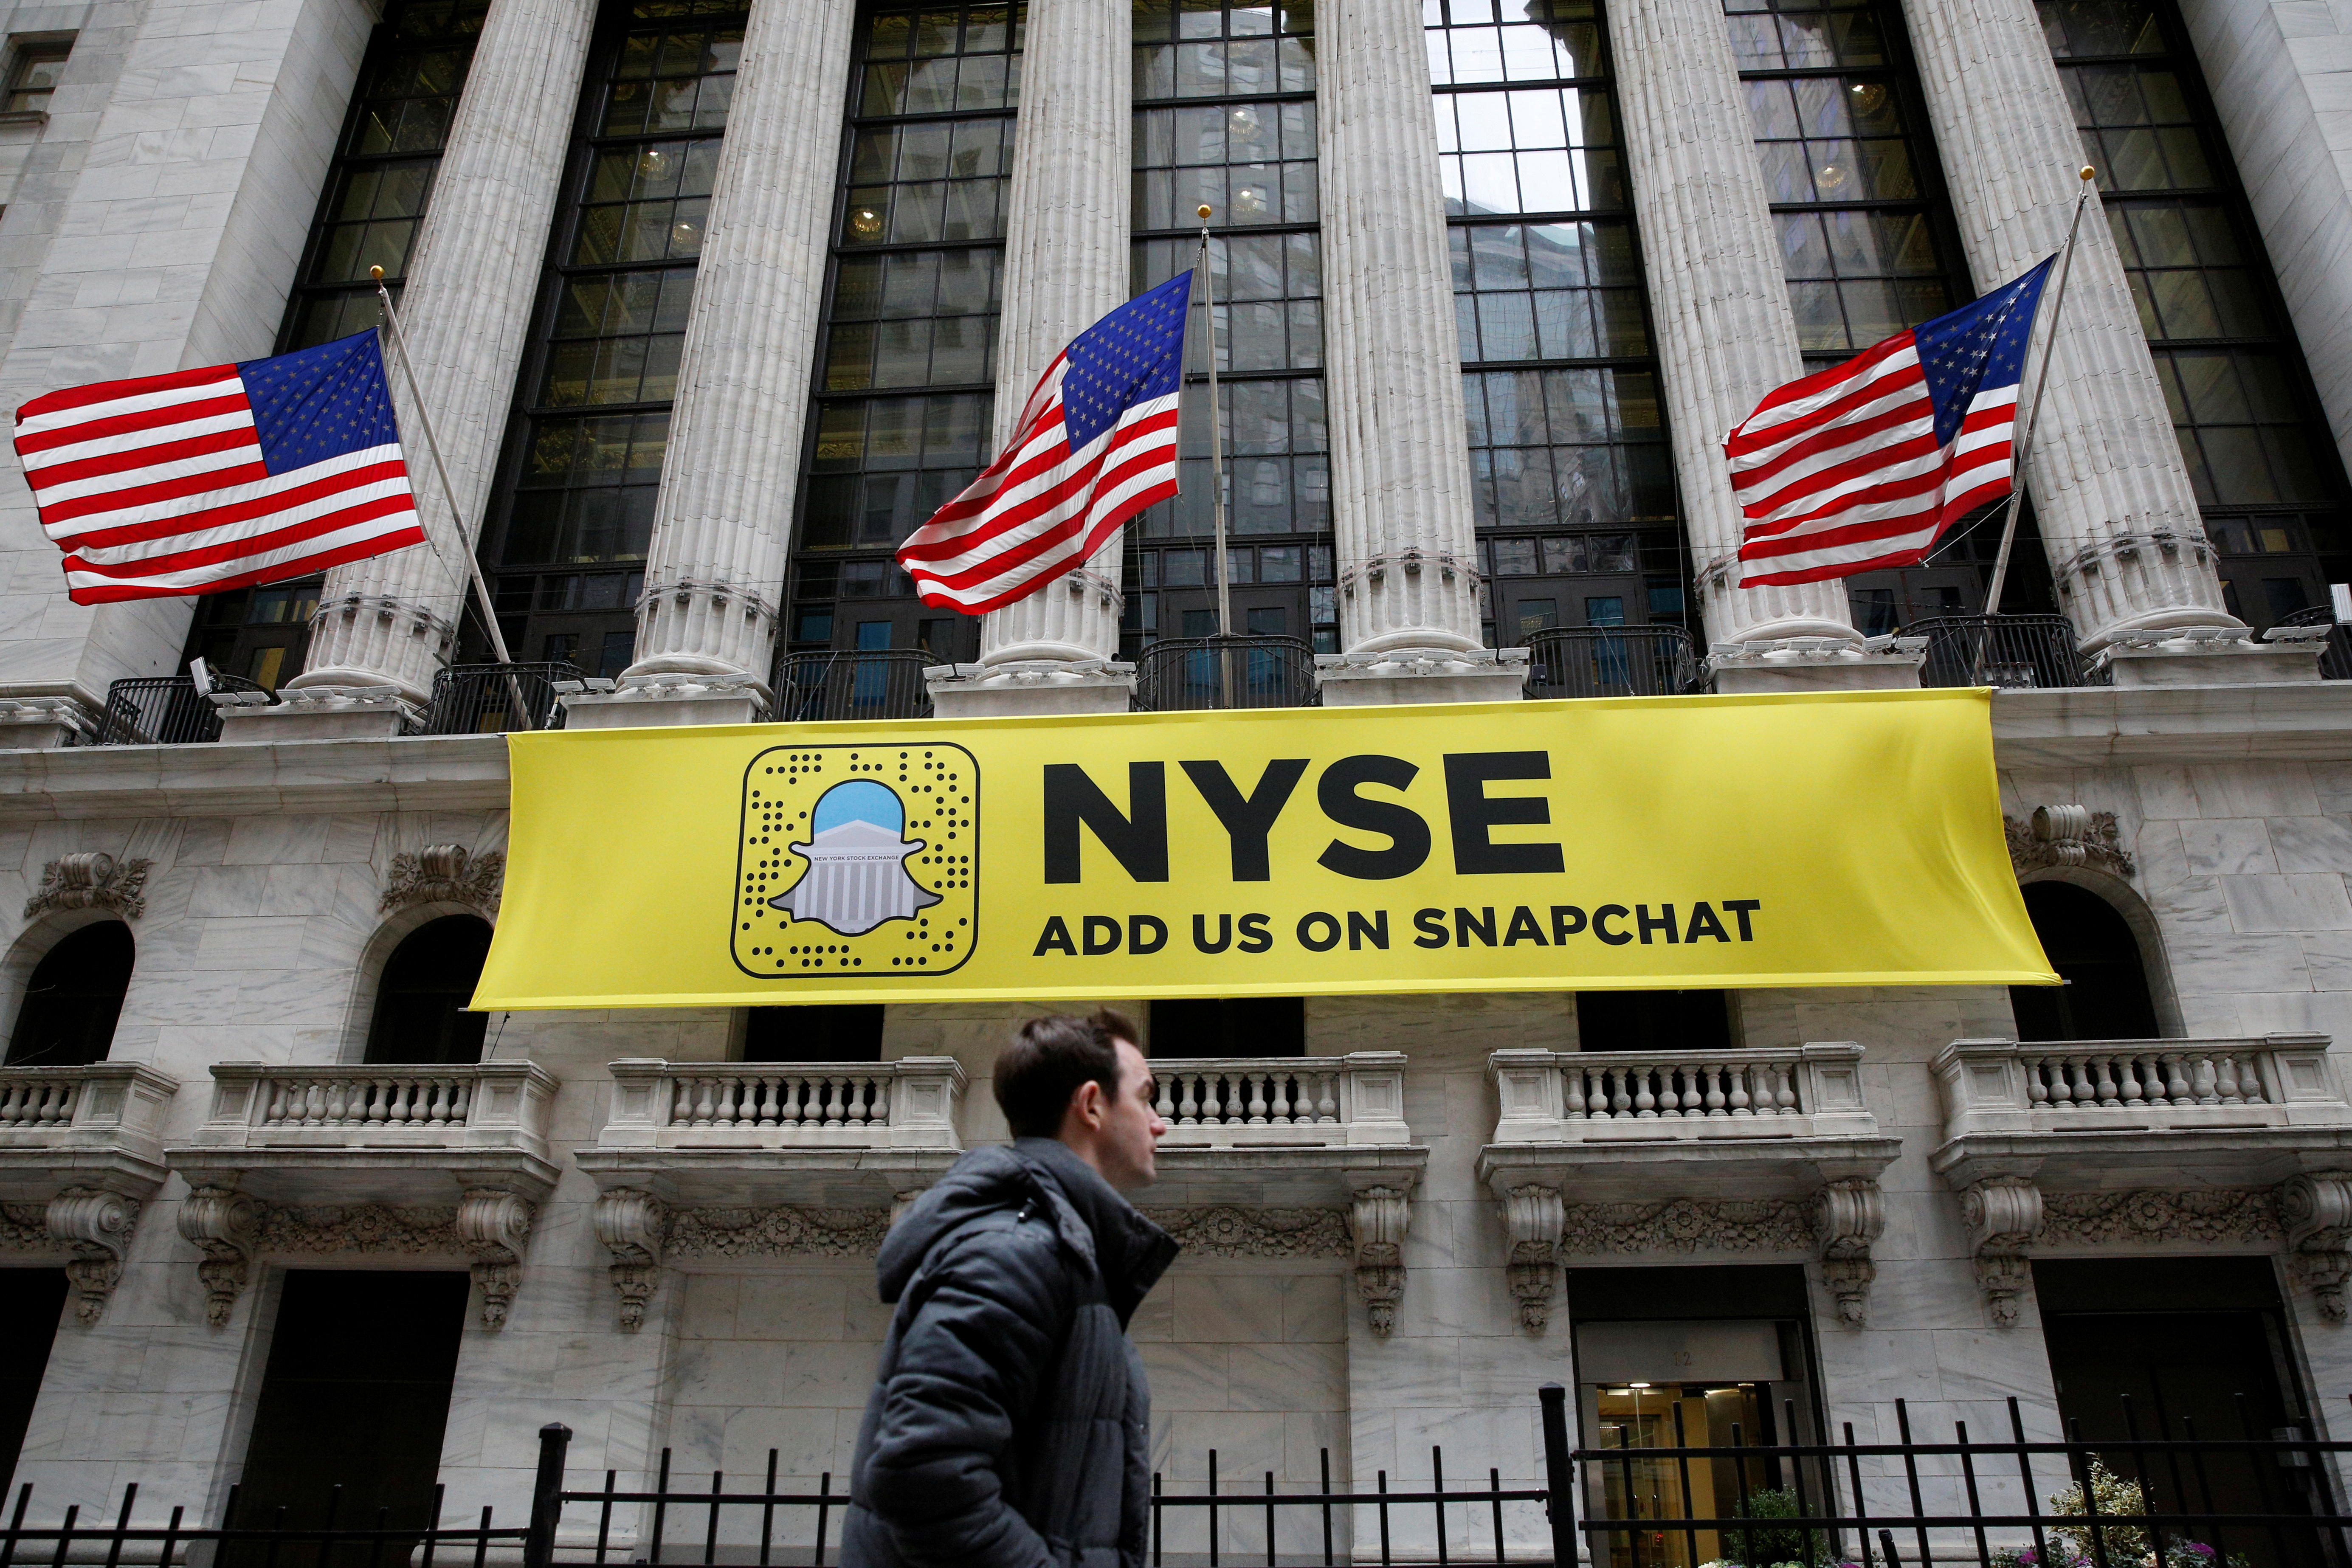 snapchat-nyse-introduction-en-bourse-reseau-social-millennials-tech-ipo